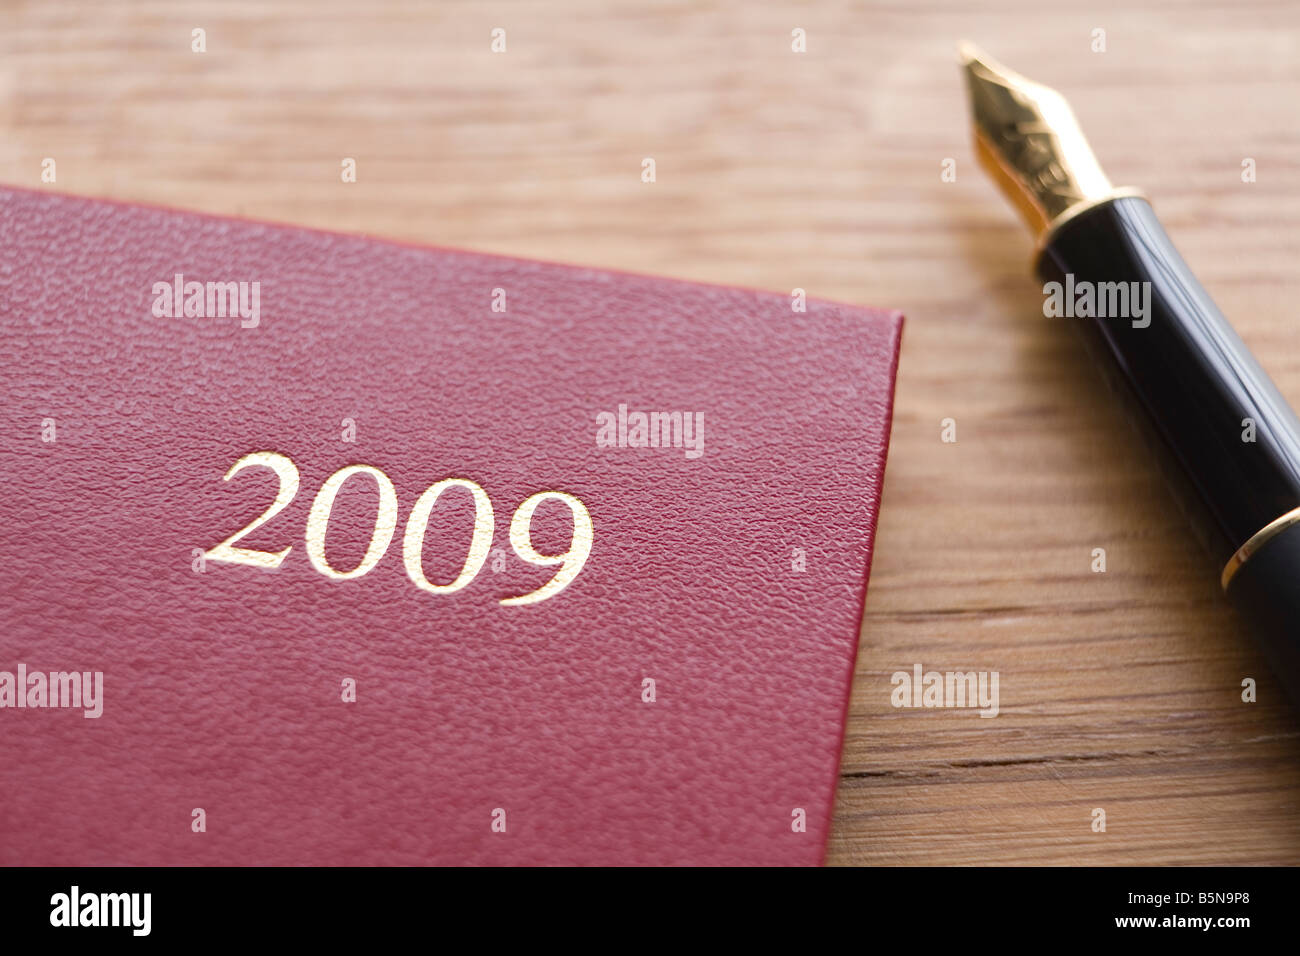 Red Leather 2009 Diary And Fountain Pen On Wooden Counter - Stock Image